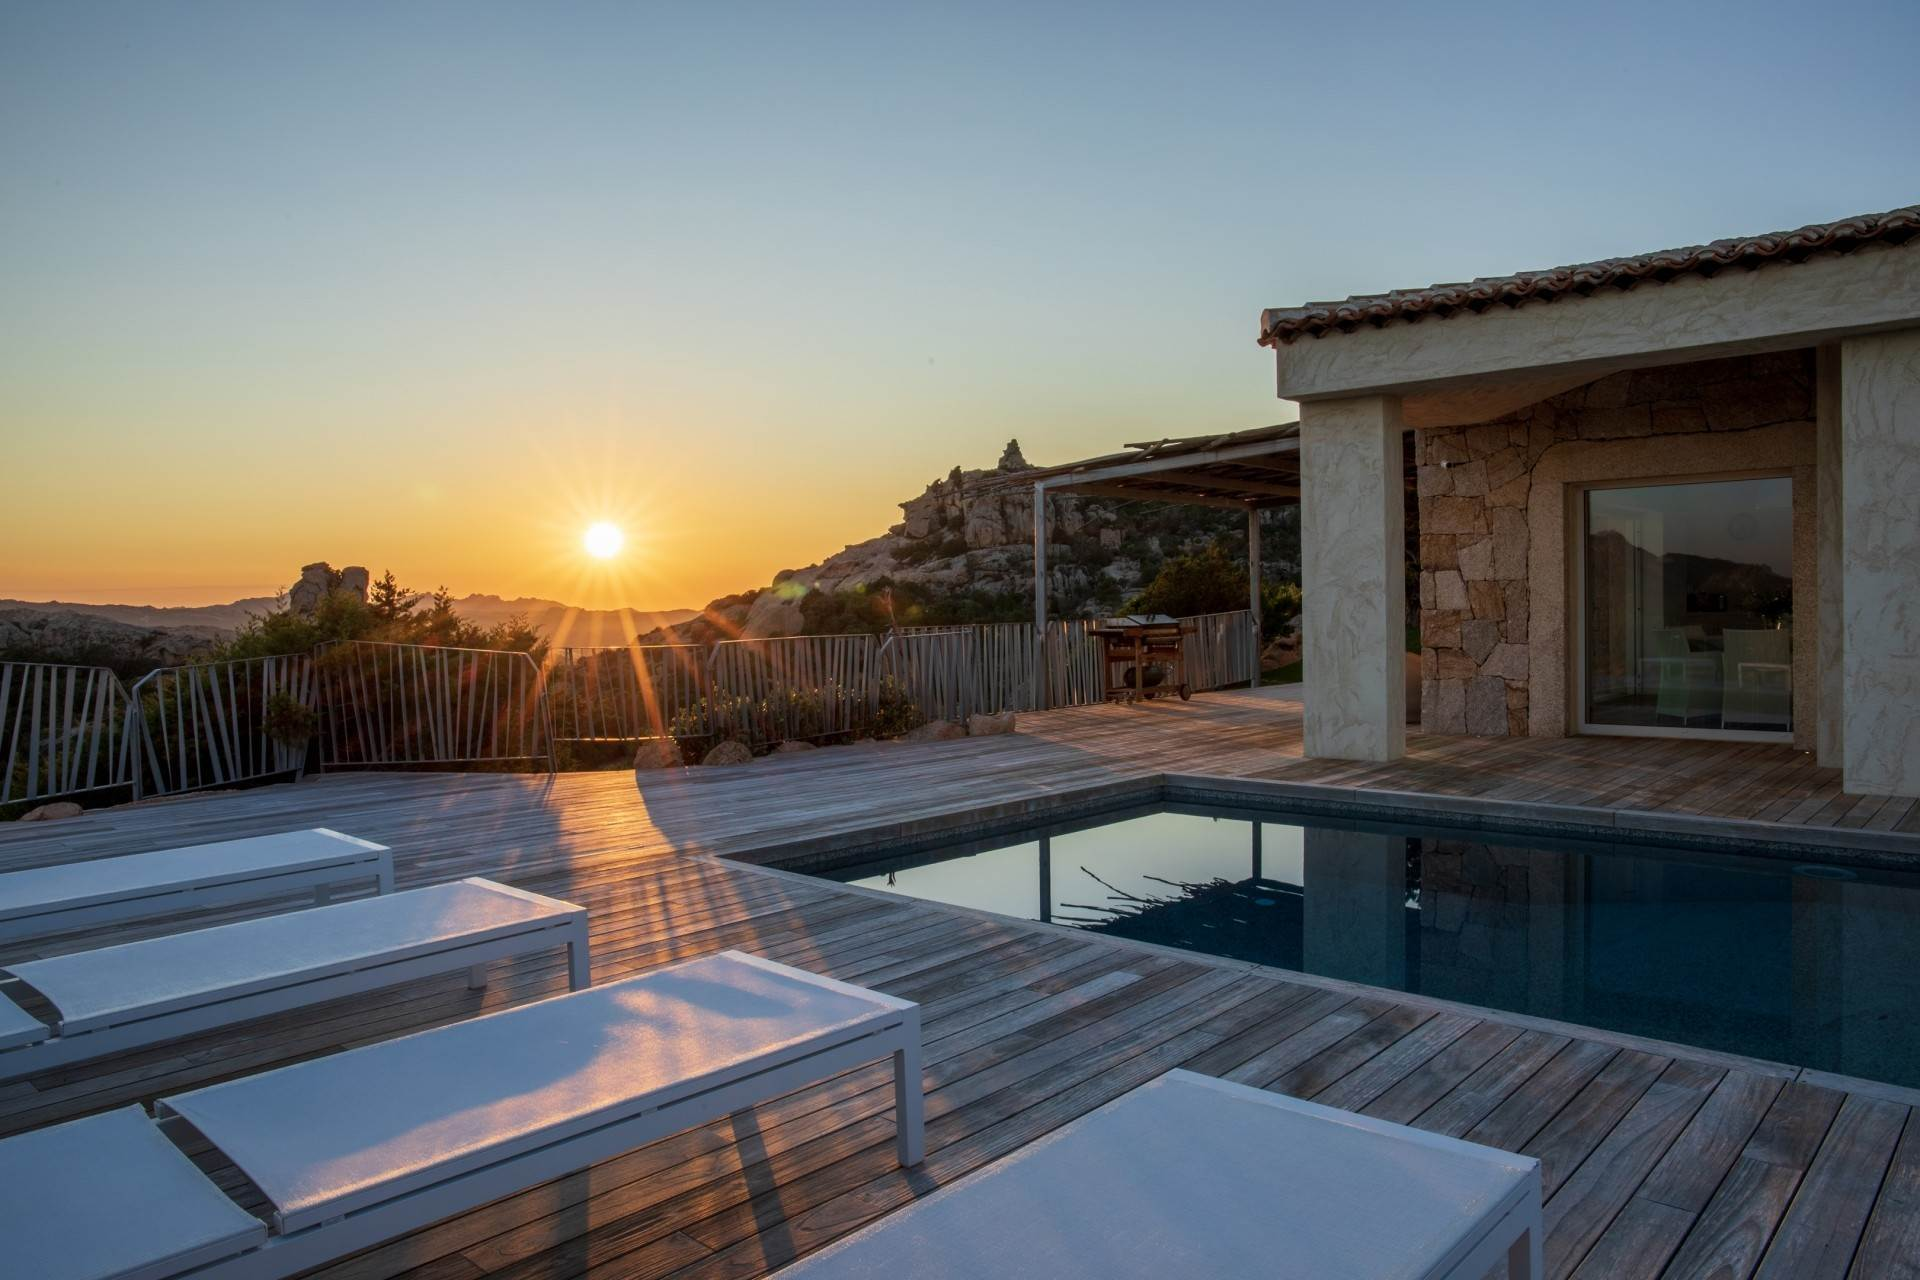 3. Villa/Townhouse for Rent at Stazzu Tartaruga Porto Cervo, Olbia Tempio,07021 Italy